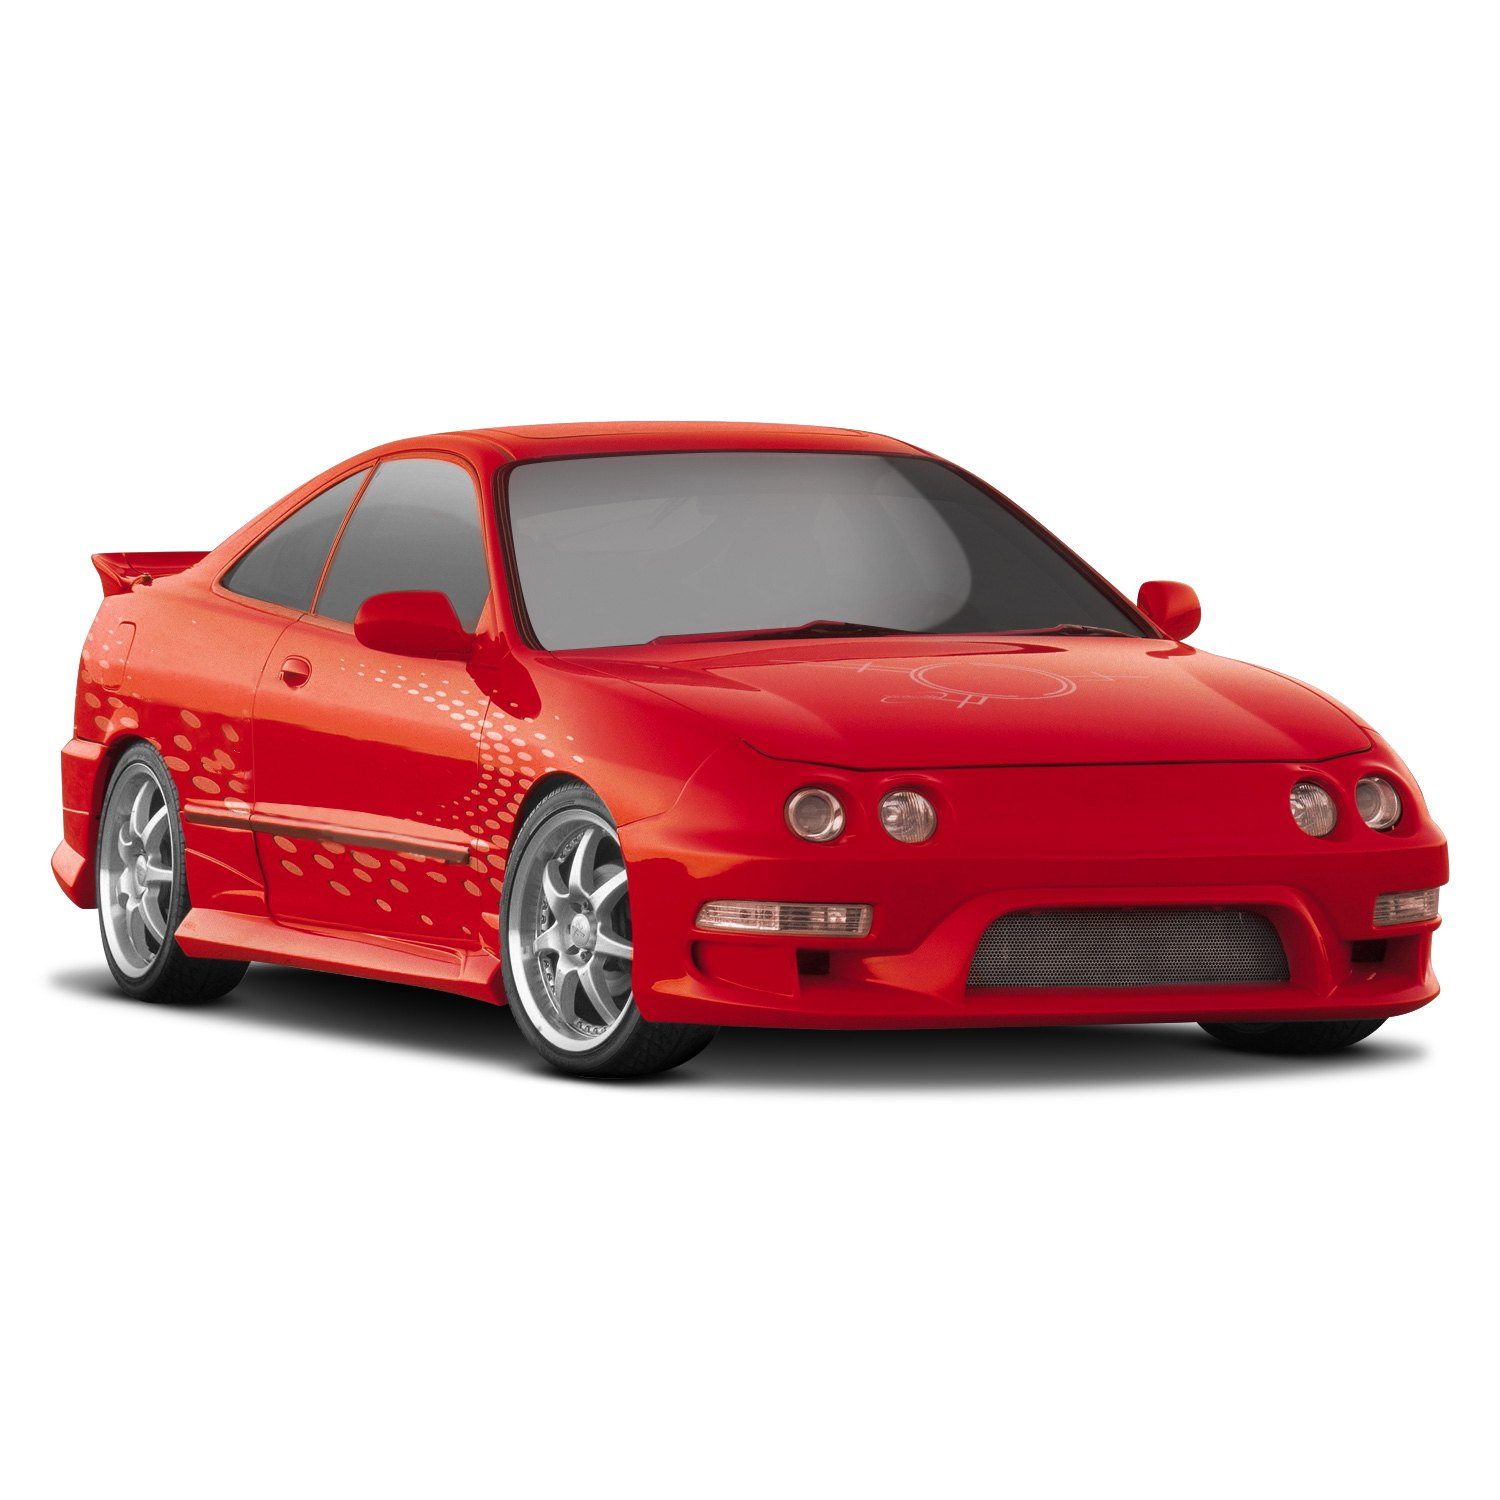 Acura Integra Coupe 1994-1997 Custom Style Body Kit